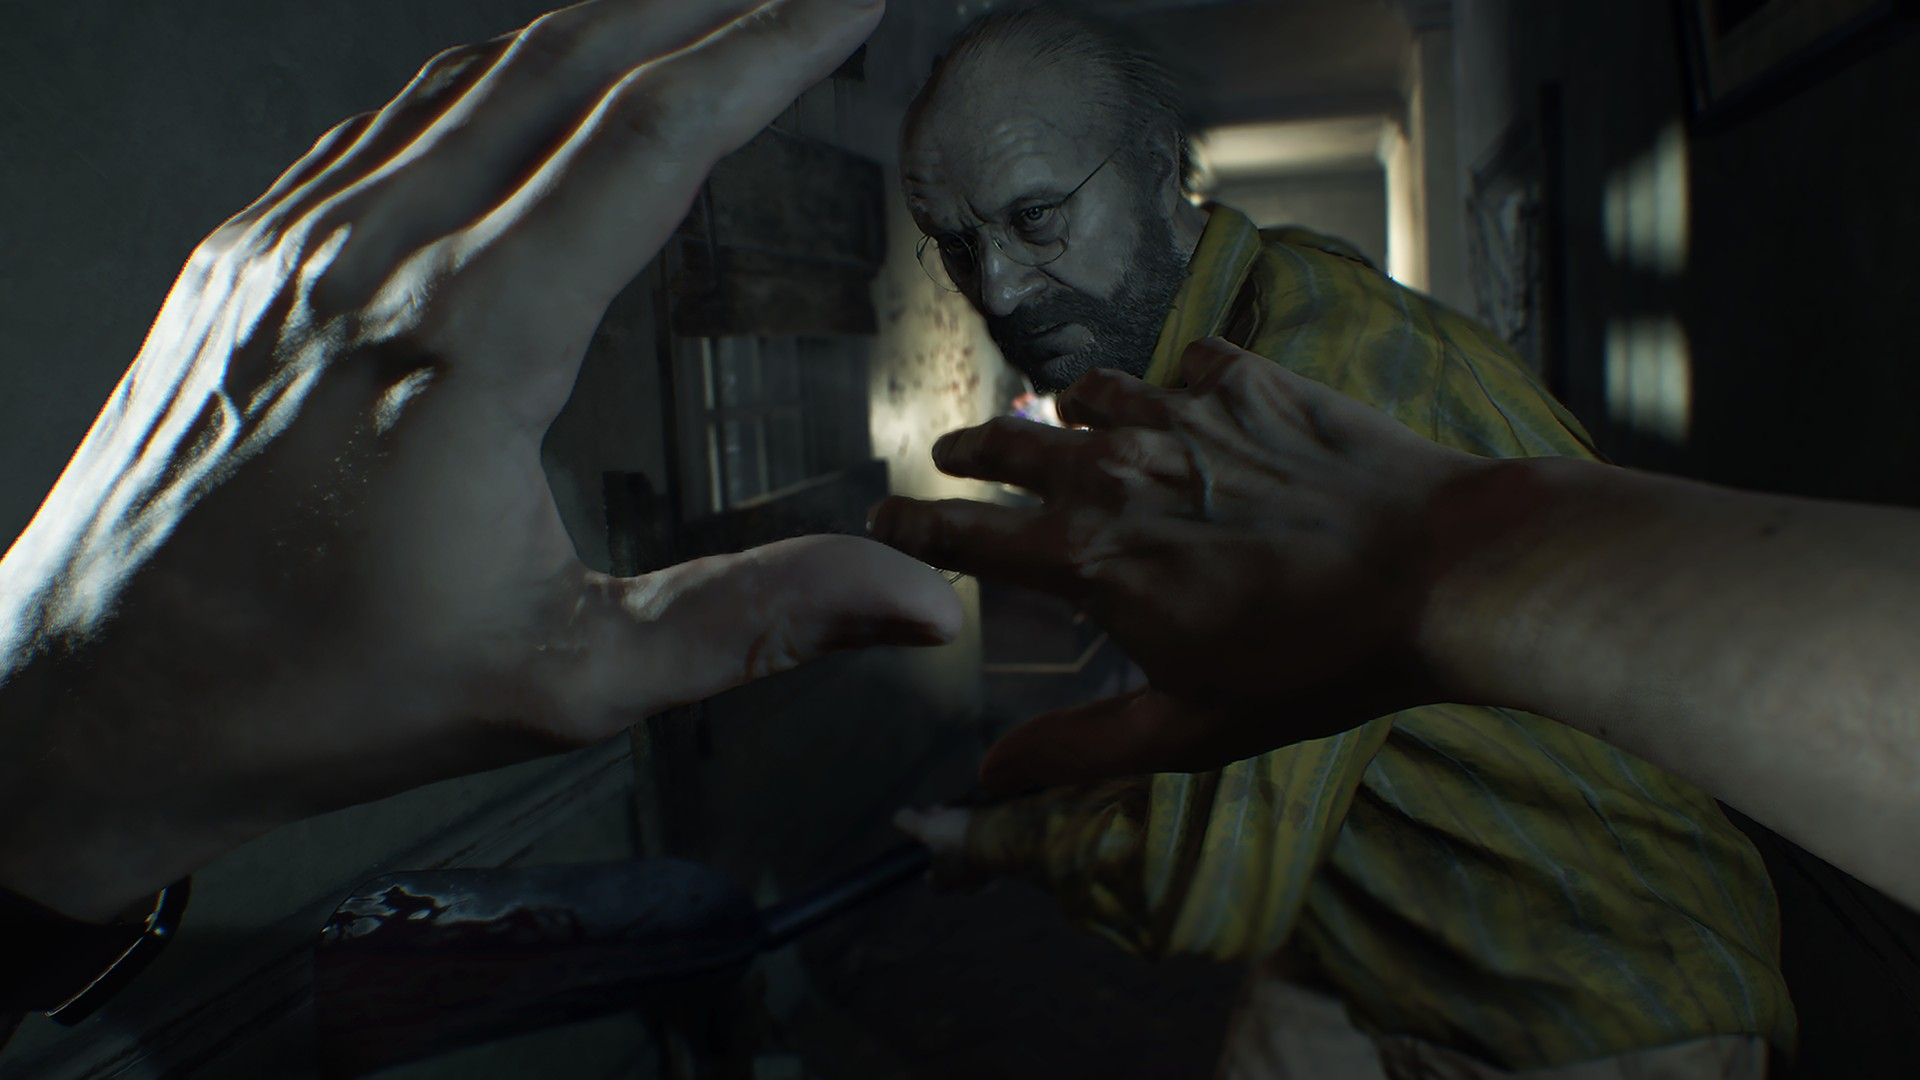 Capcom: Resident Evil 7 FOV is Capped at 90, No Plans for